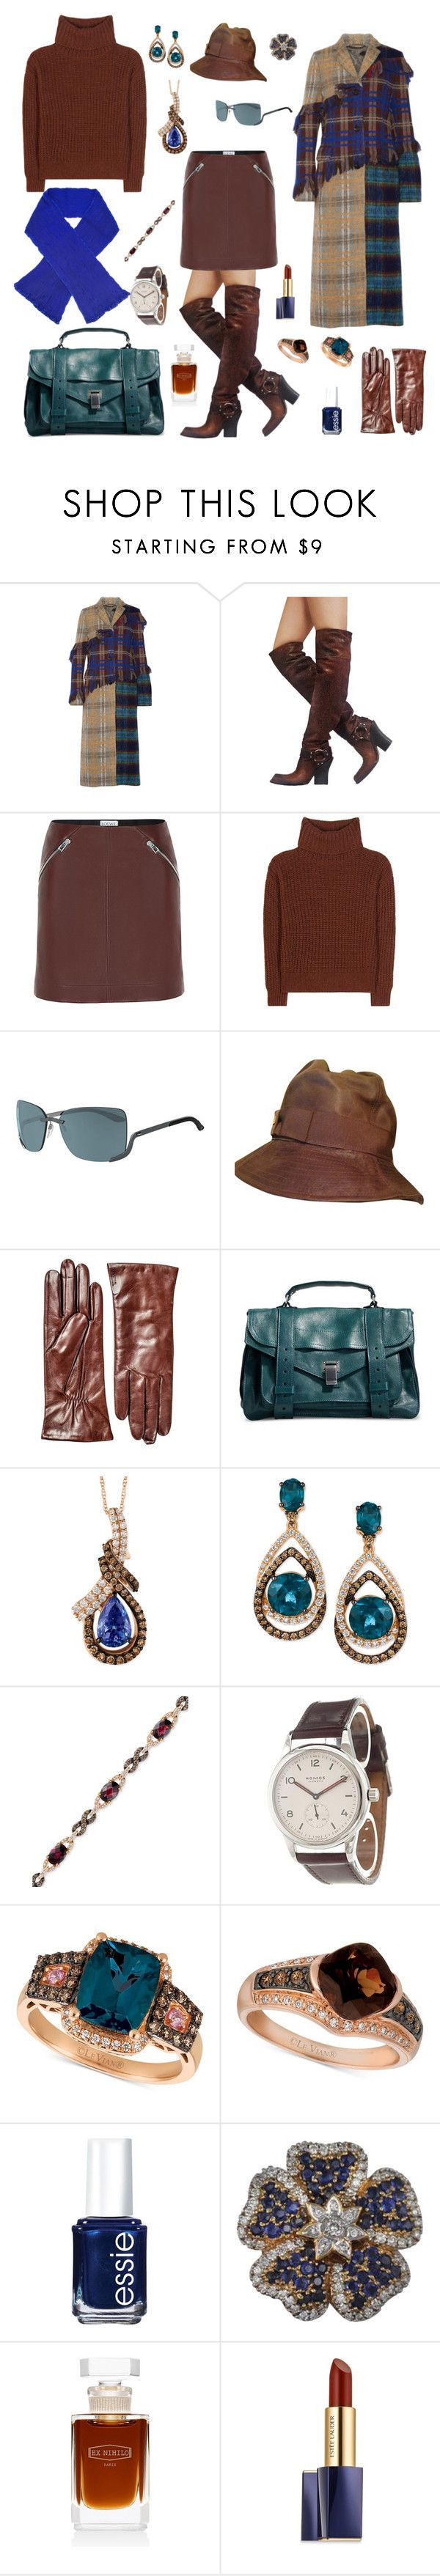 """""""starting from the overcoat"""" by harikleiatsirka ❤ liked on Polyvore featuring Acne Studios, Christian Dior, Loewe, Loro Piana, Silhouette, Hestra, Proenza Schouler, LE VIAN, Nomos and Essie"""